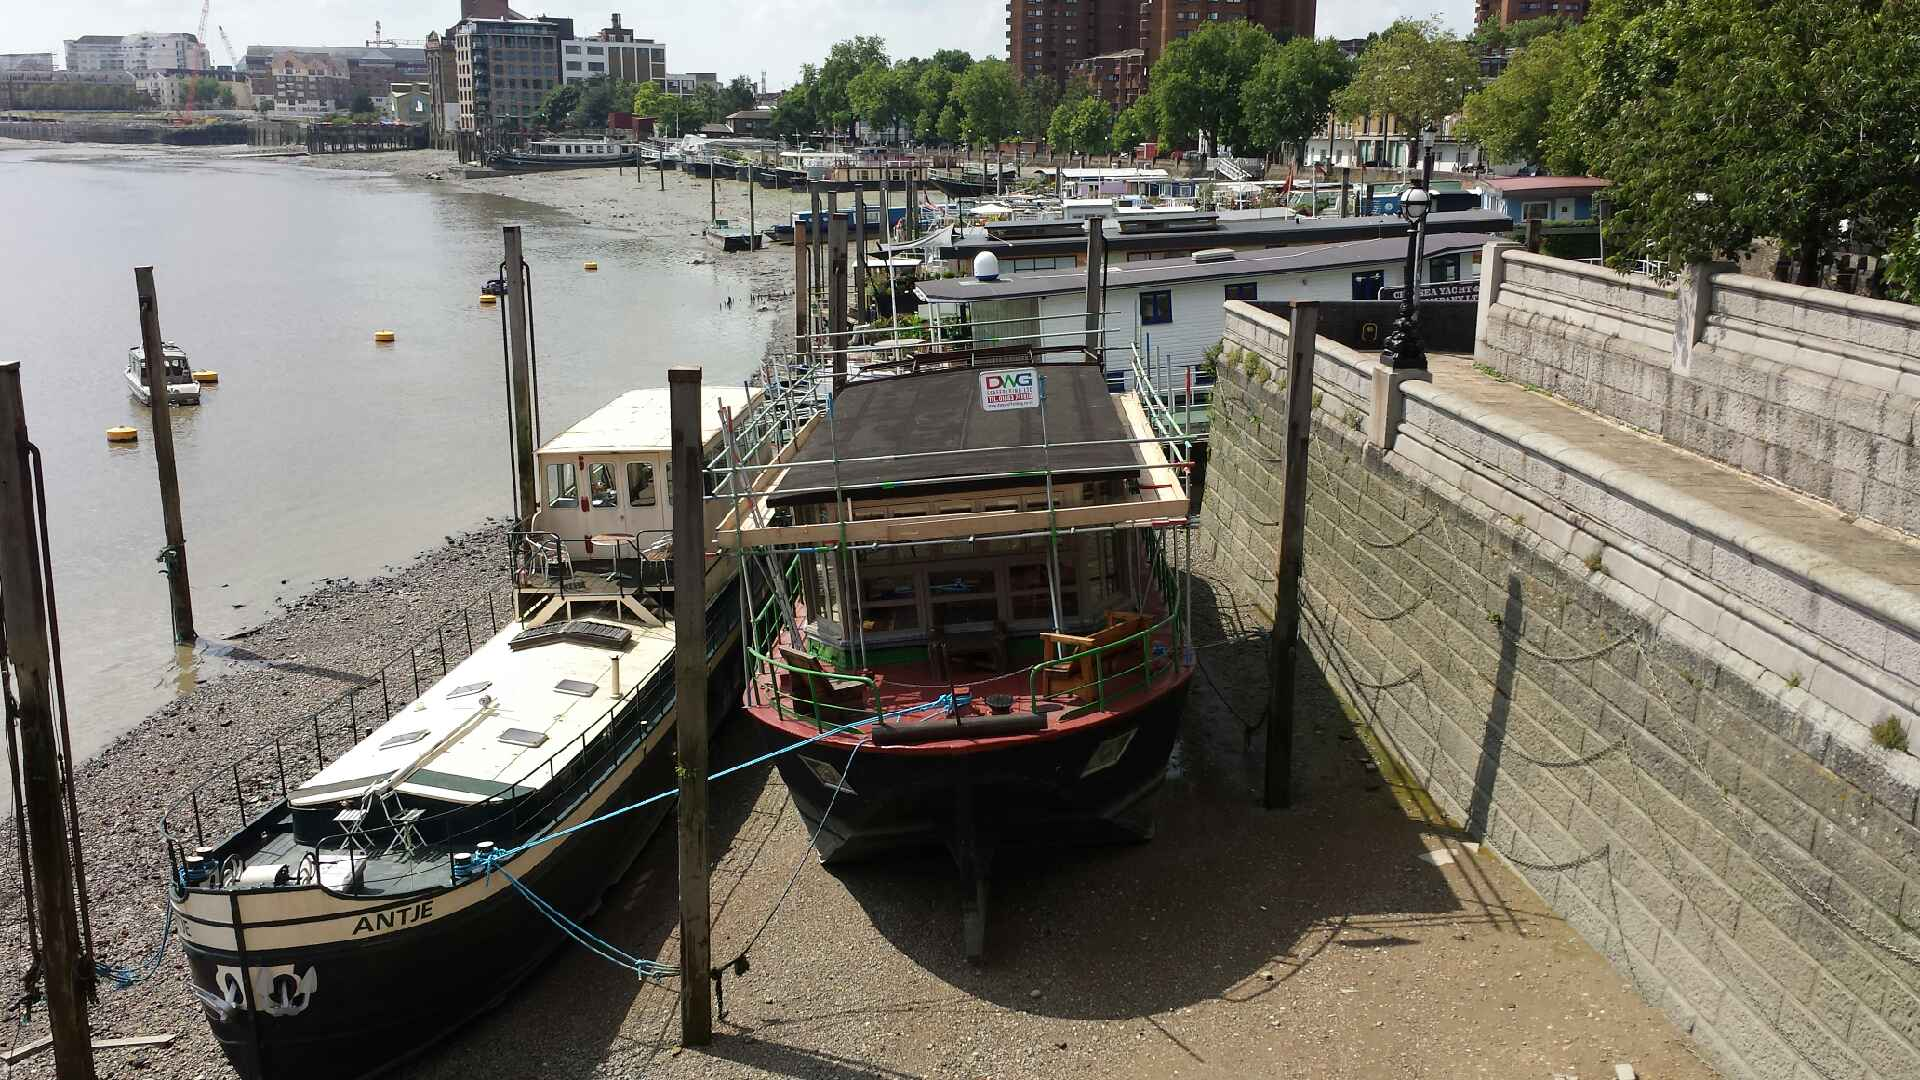 Barge Boat at Battersea Bridge